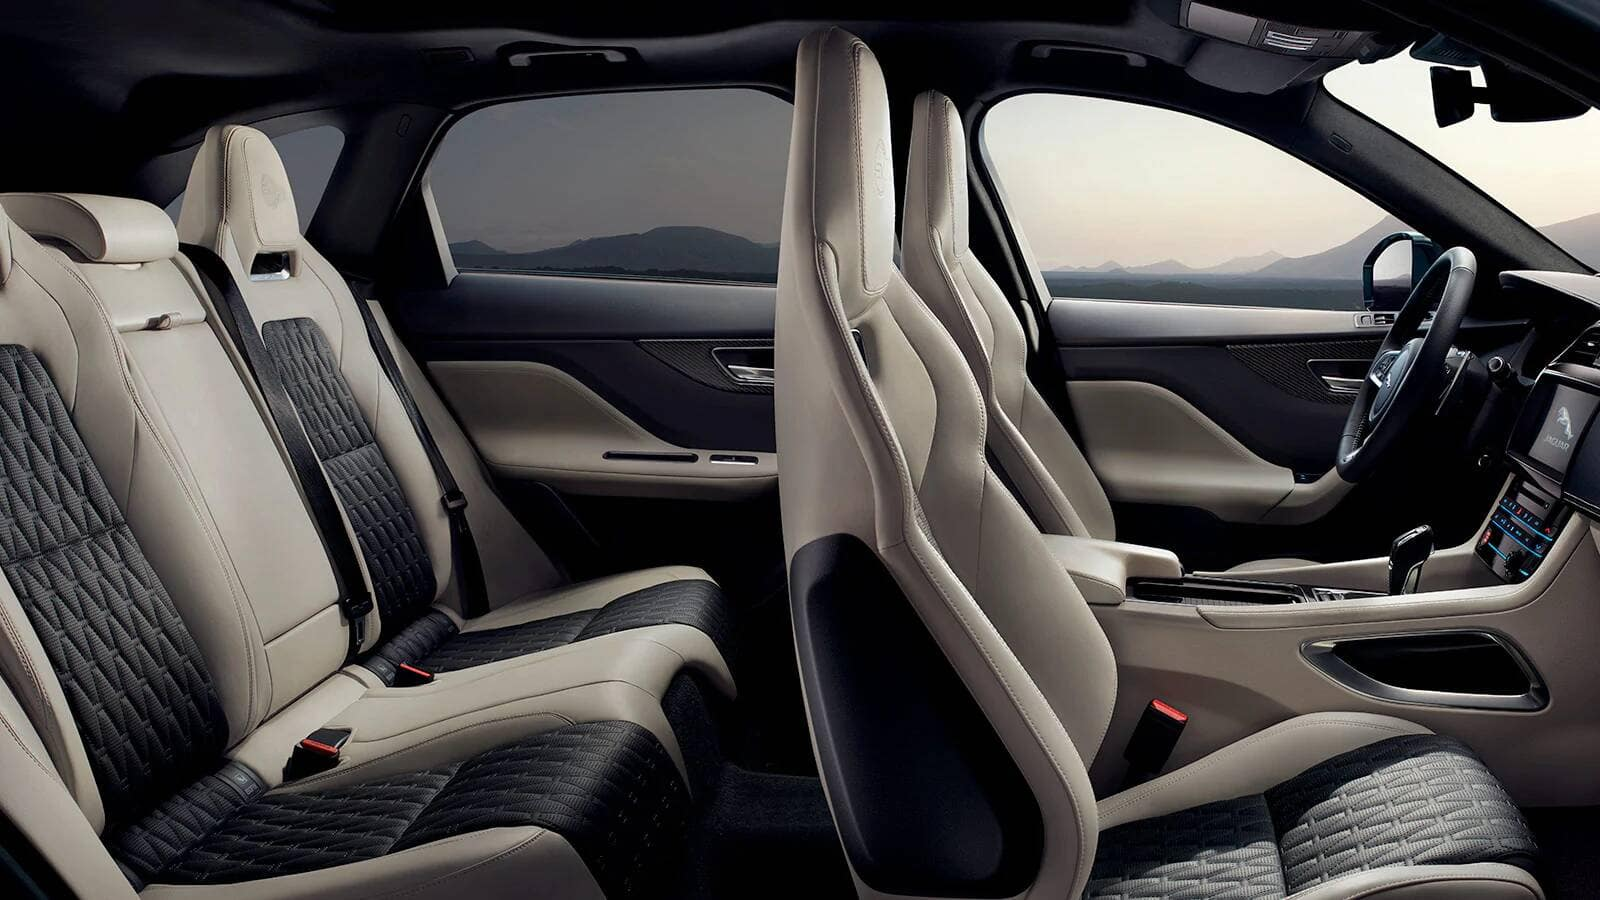 2020 Jaguar F-PACE Seating Capacity